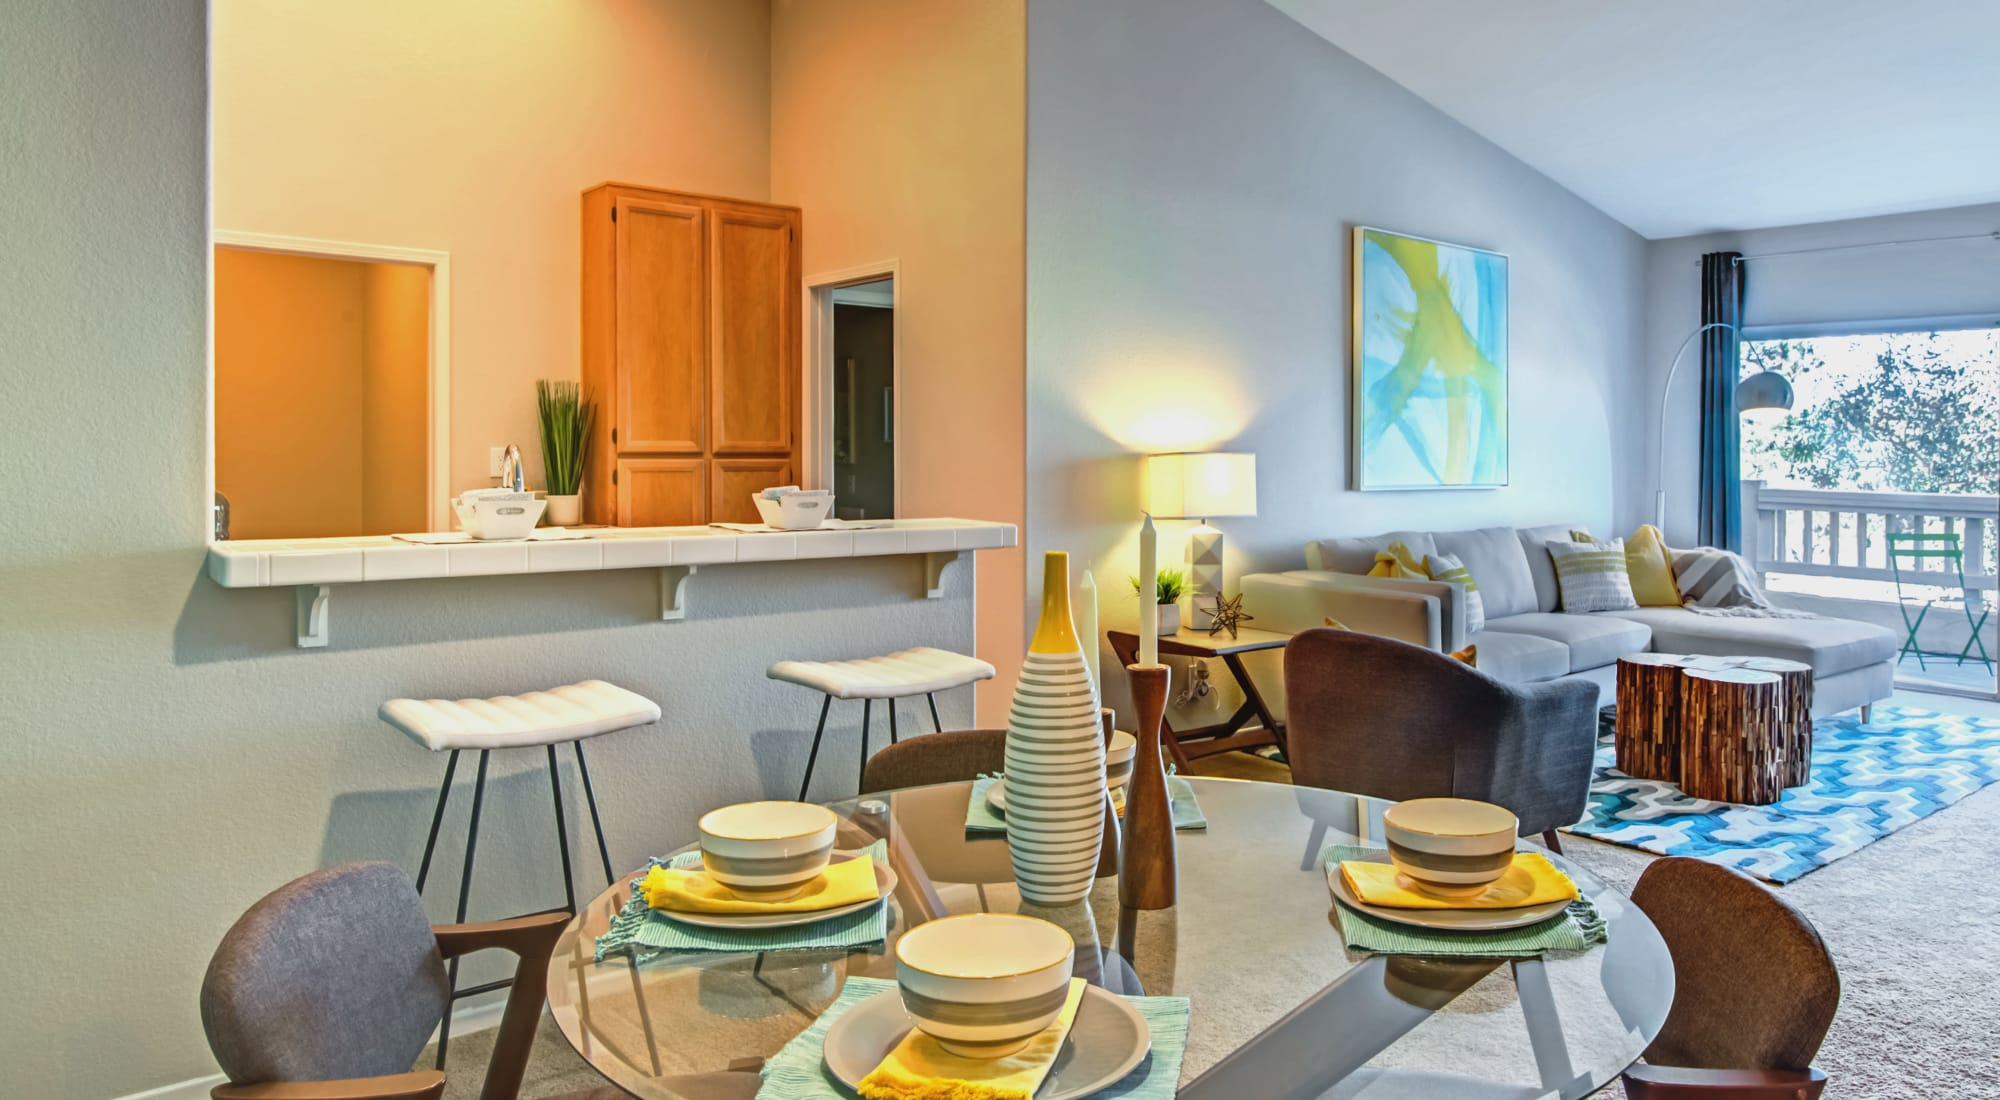 Apply to live at Sofi Canyon Hills in San Diego, California